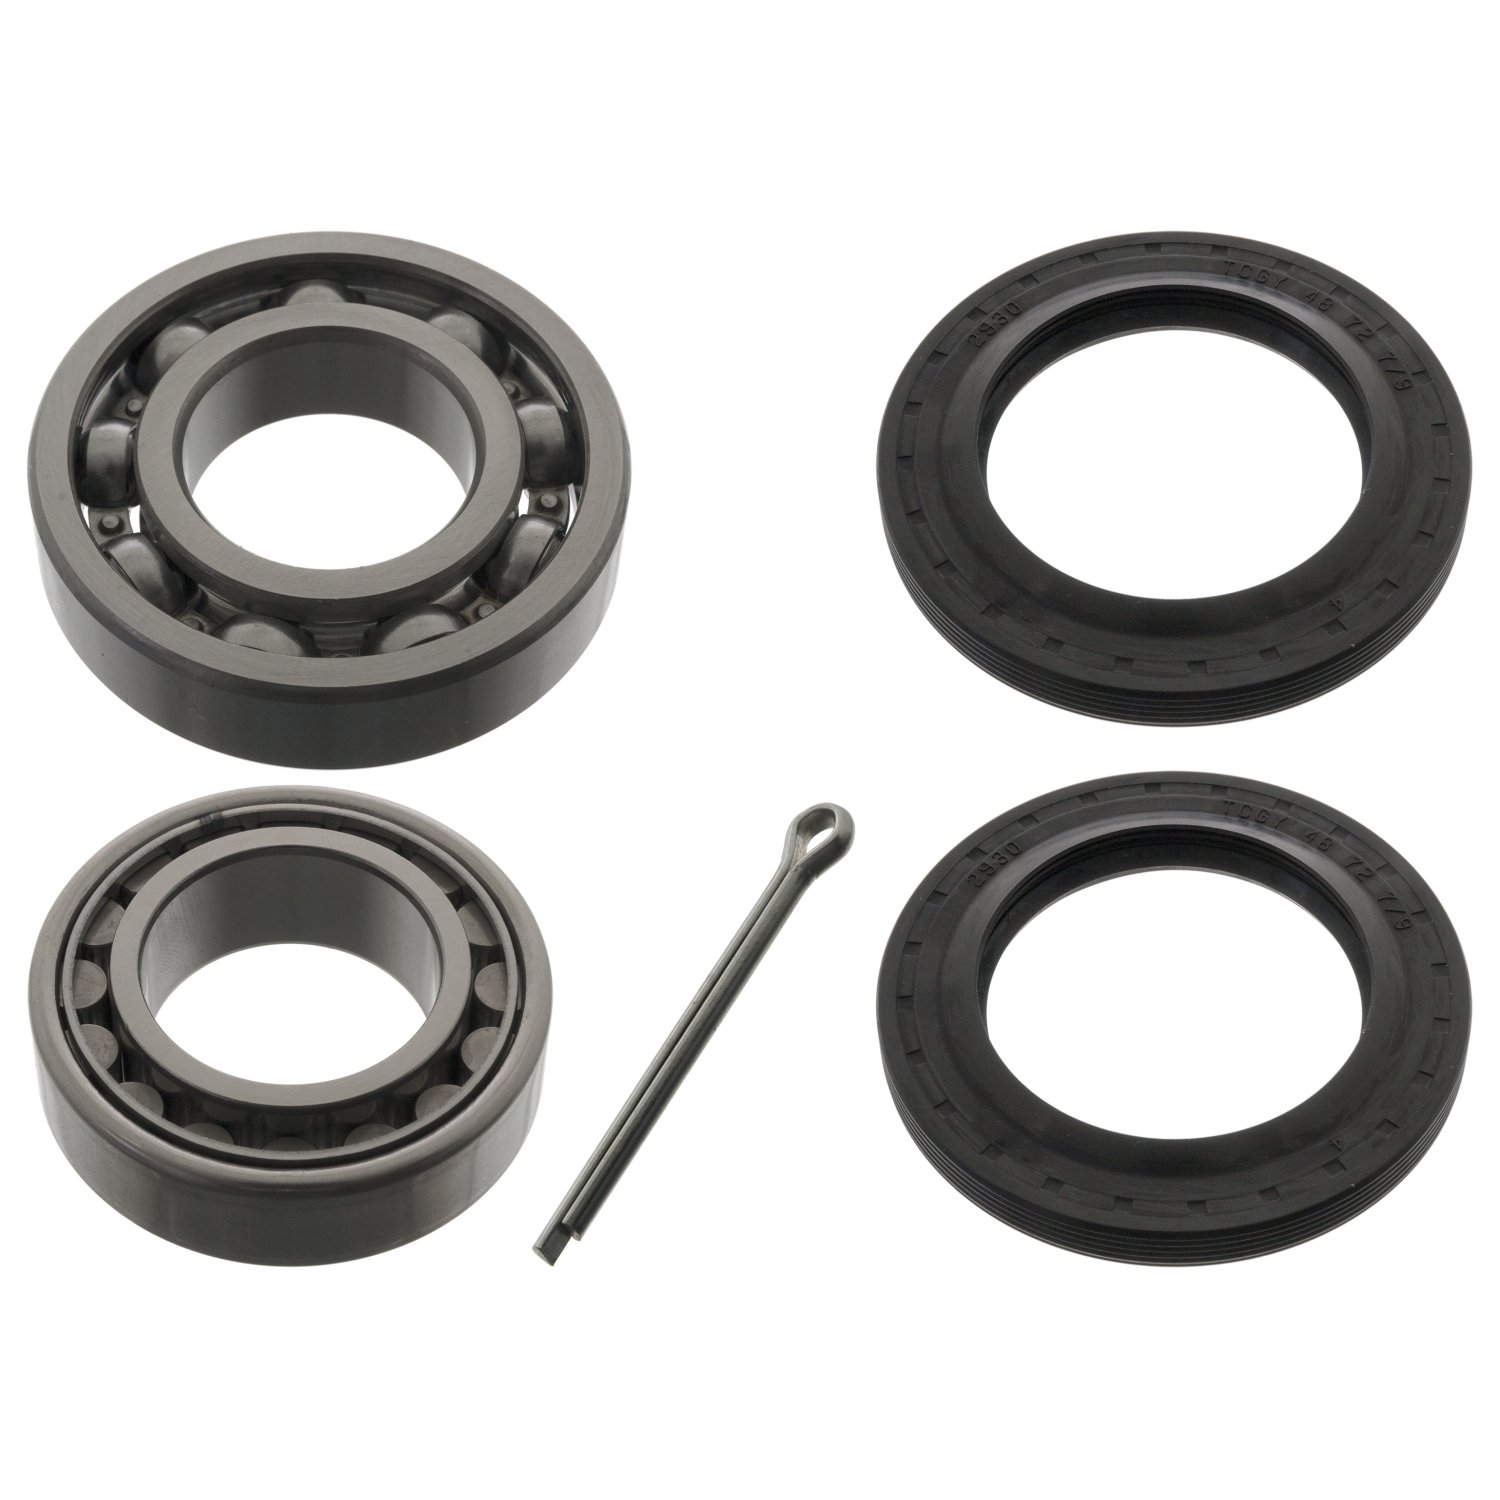 pack of one febi bilstein 03691 Wheel Bearing Kit with shaft seals and cotter pin